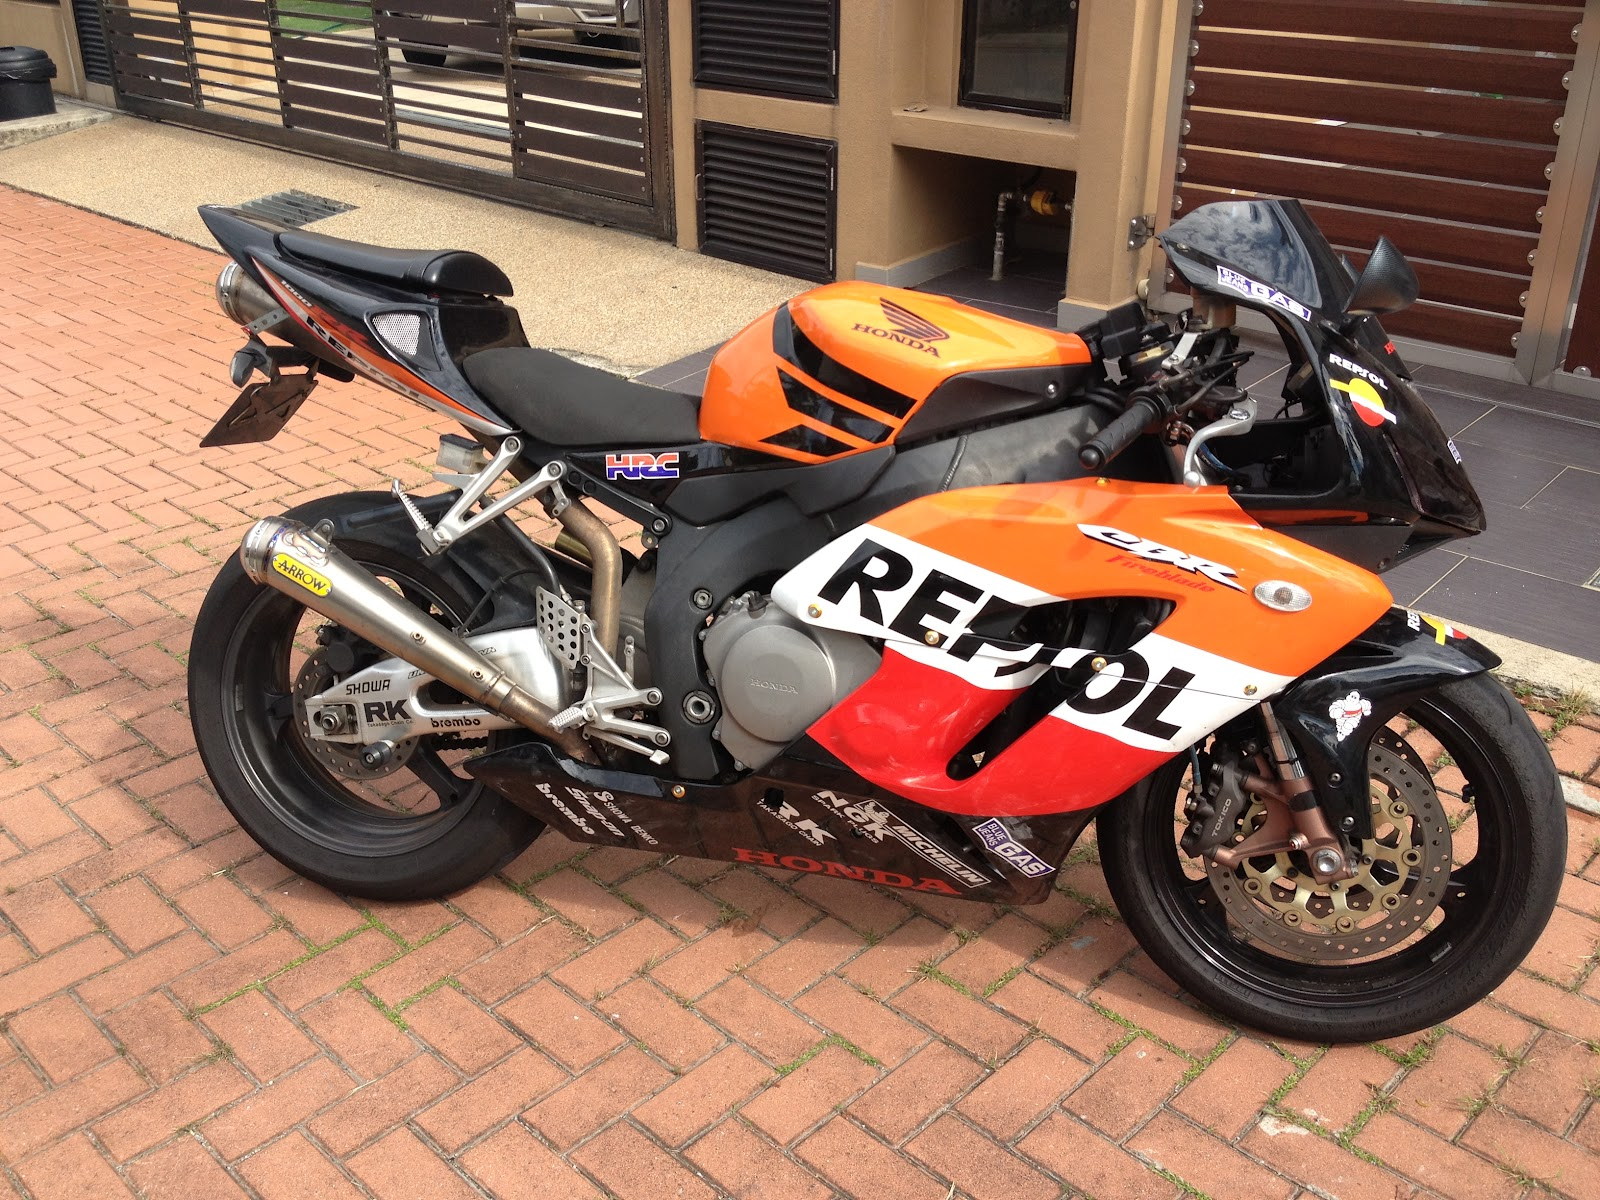 Super Great Sportbikes For Sale Honda Cbr1000rr 2005